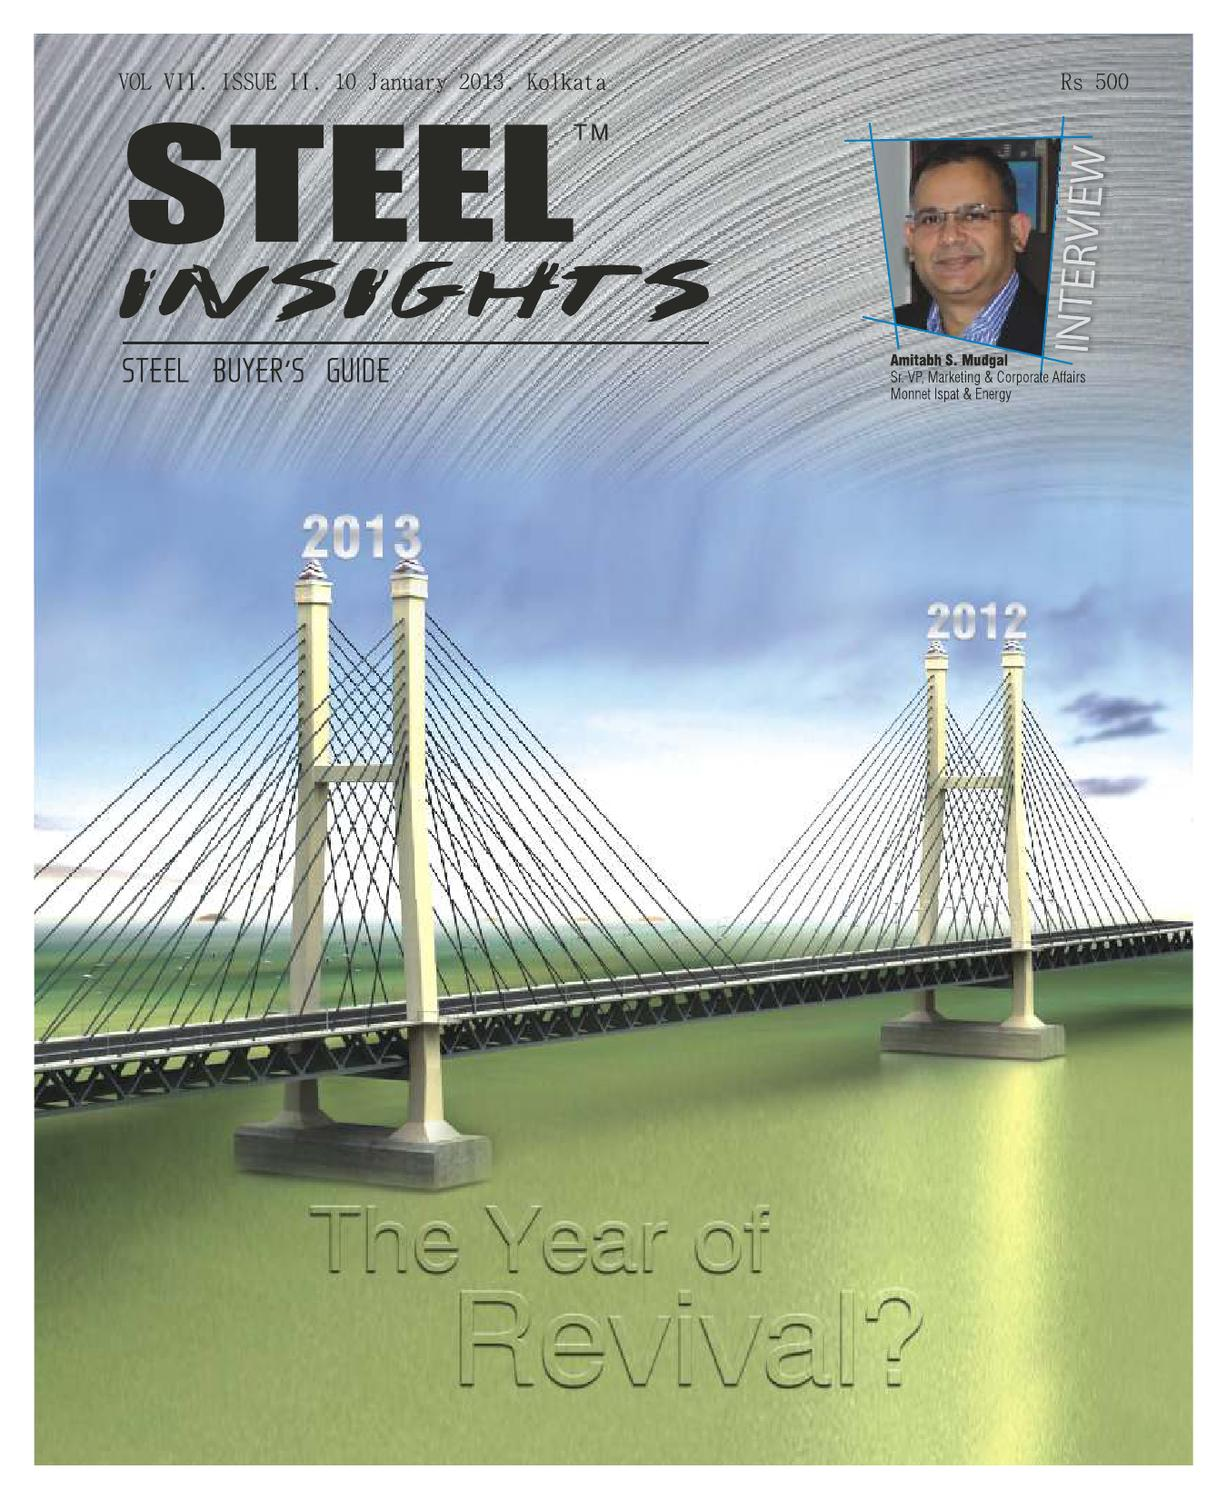 Steel Insights Jan 2013 by mjunction services ltd - issuu